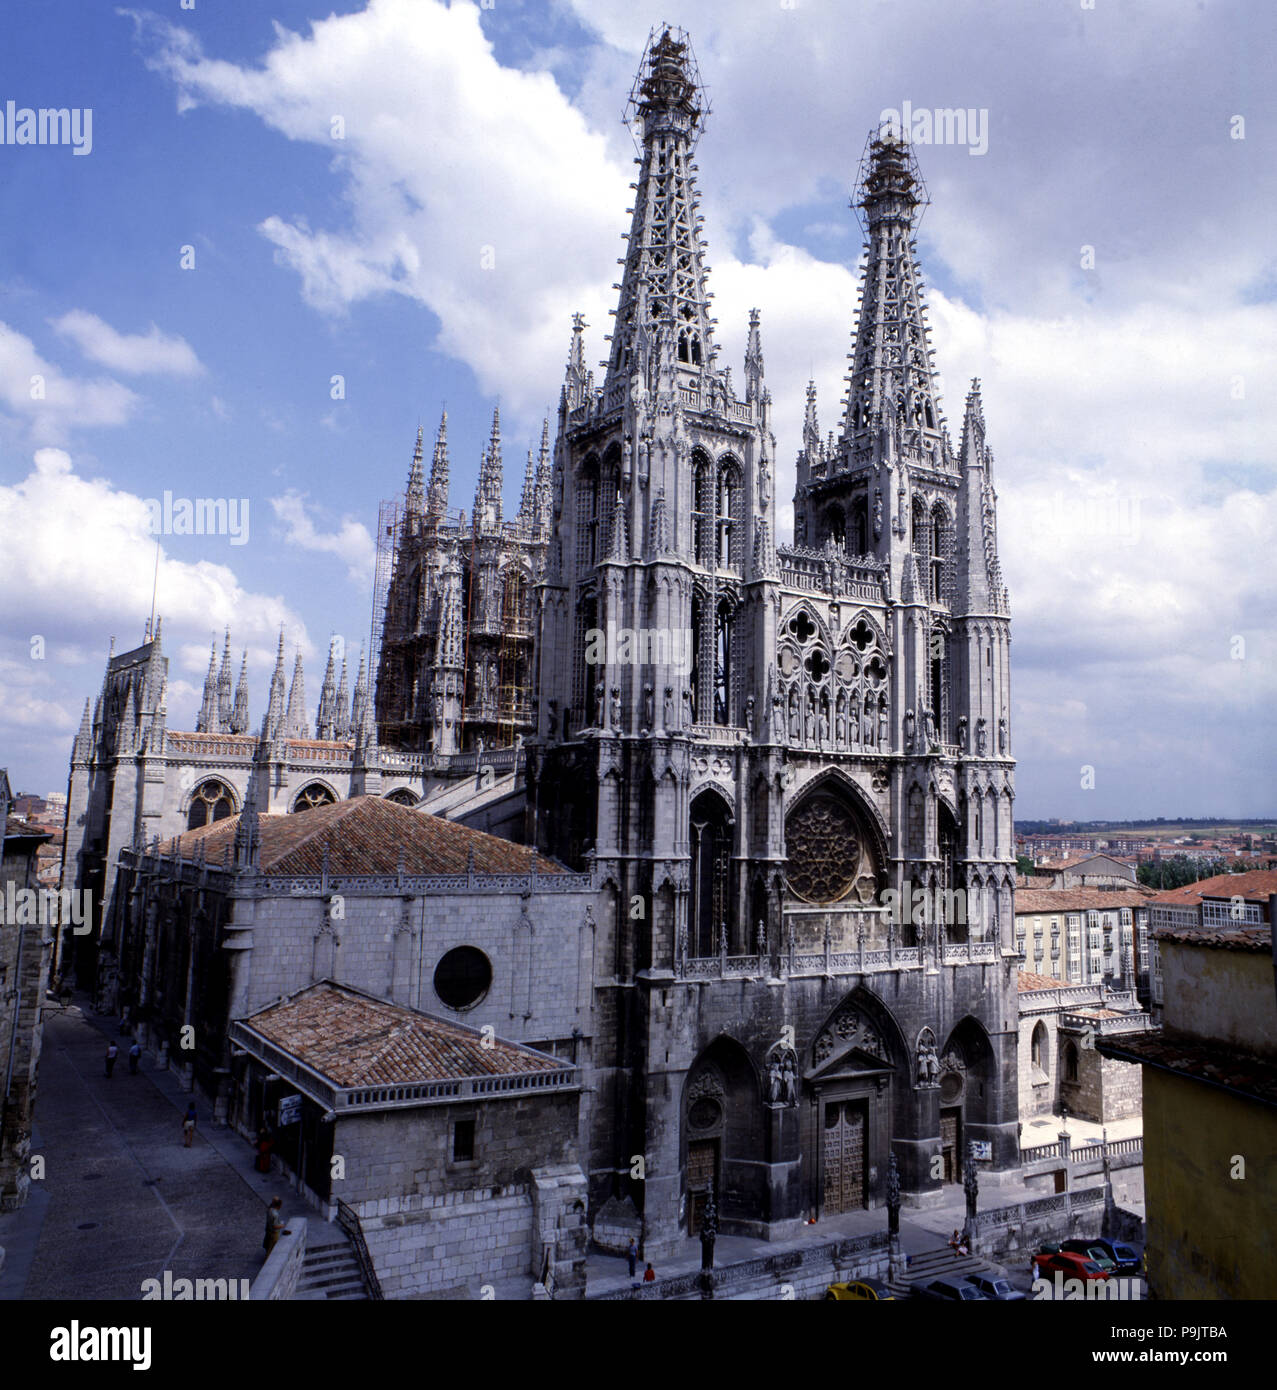 View of the Cathedral of Burgos, begun in 1221 and completed in the 15th century. - Stock Image